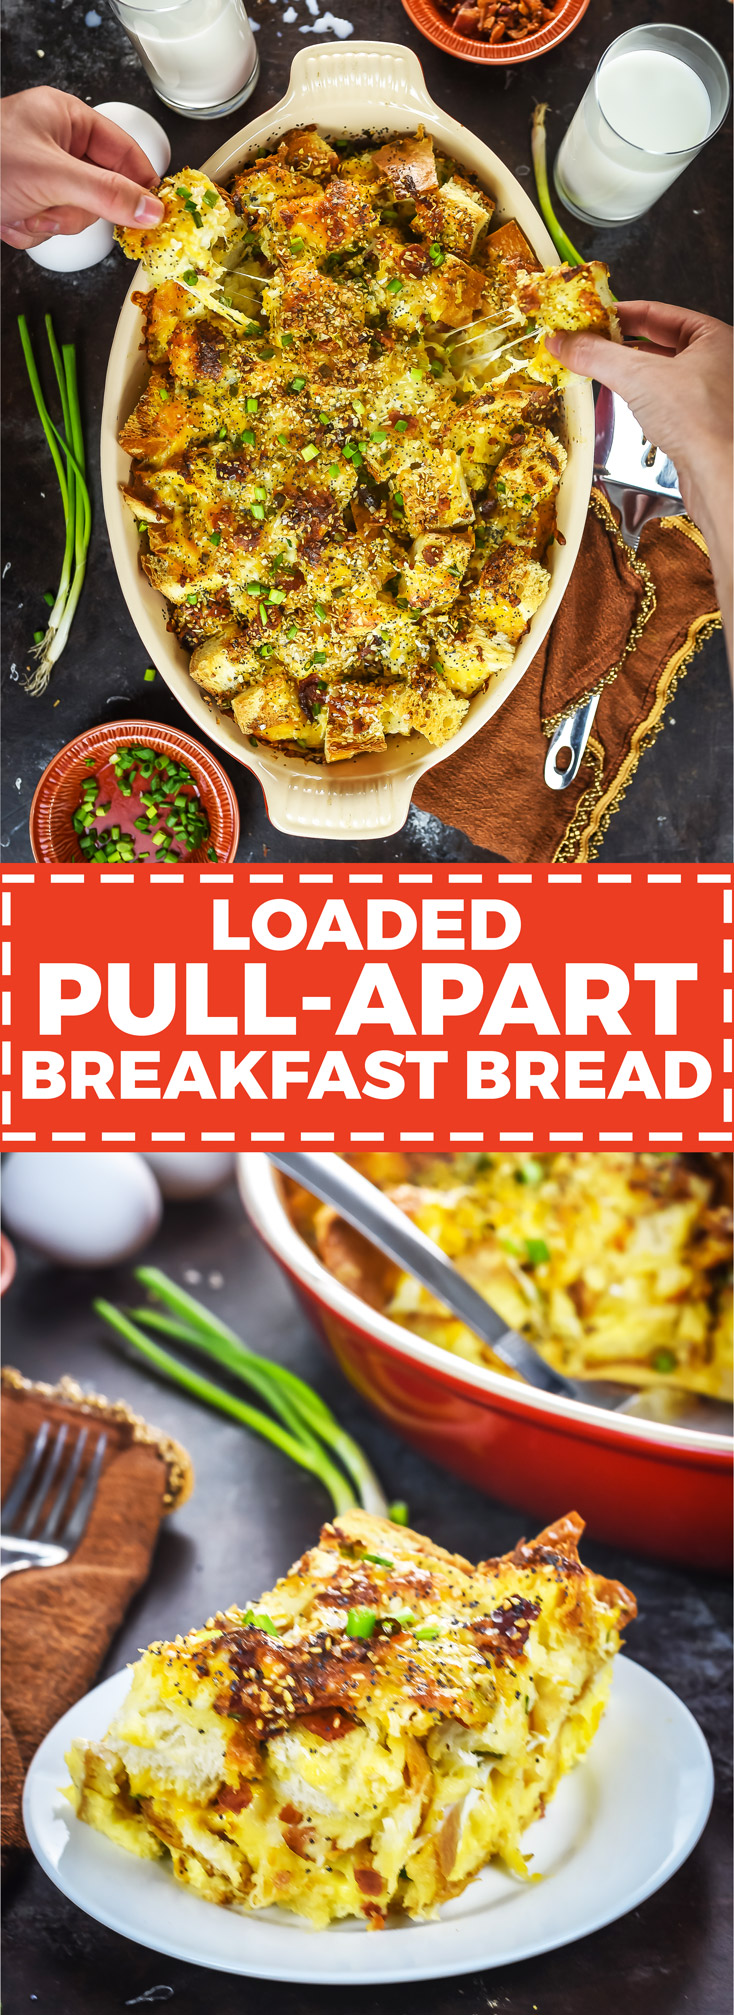 Loaded Pull-Apart Breakfast Bread. Bacon, eggs, cheese, scallions, and everything bagel seasonings make this brunch-friendly recipe a party hit. | hostthetoast.com